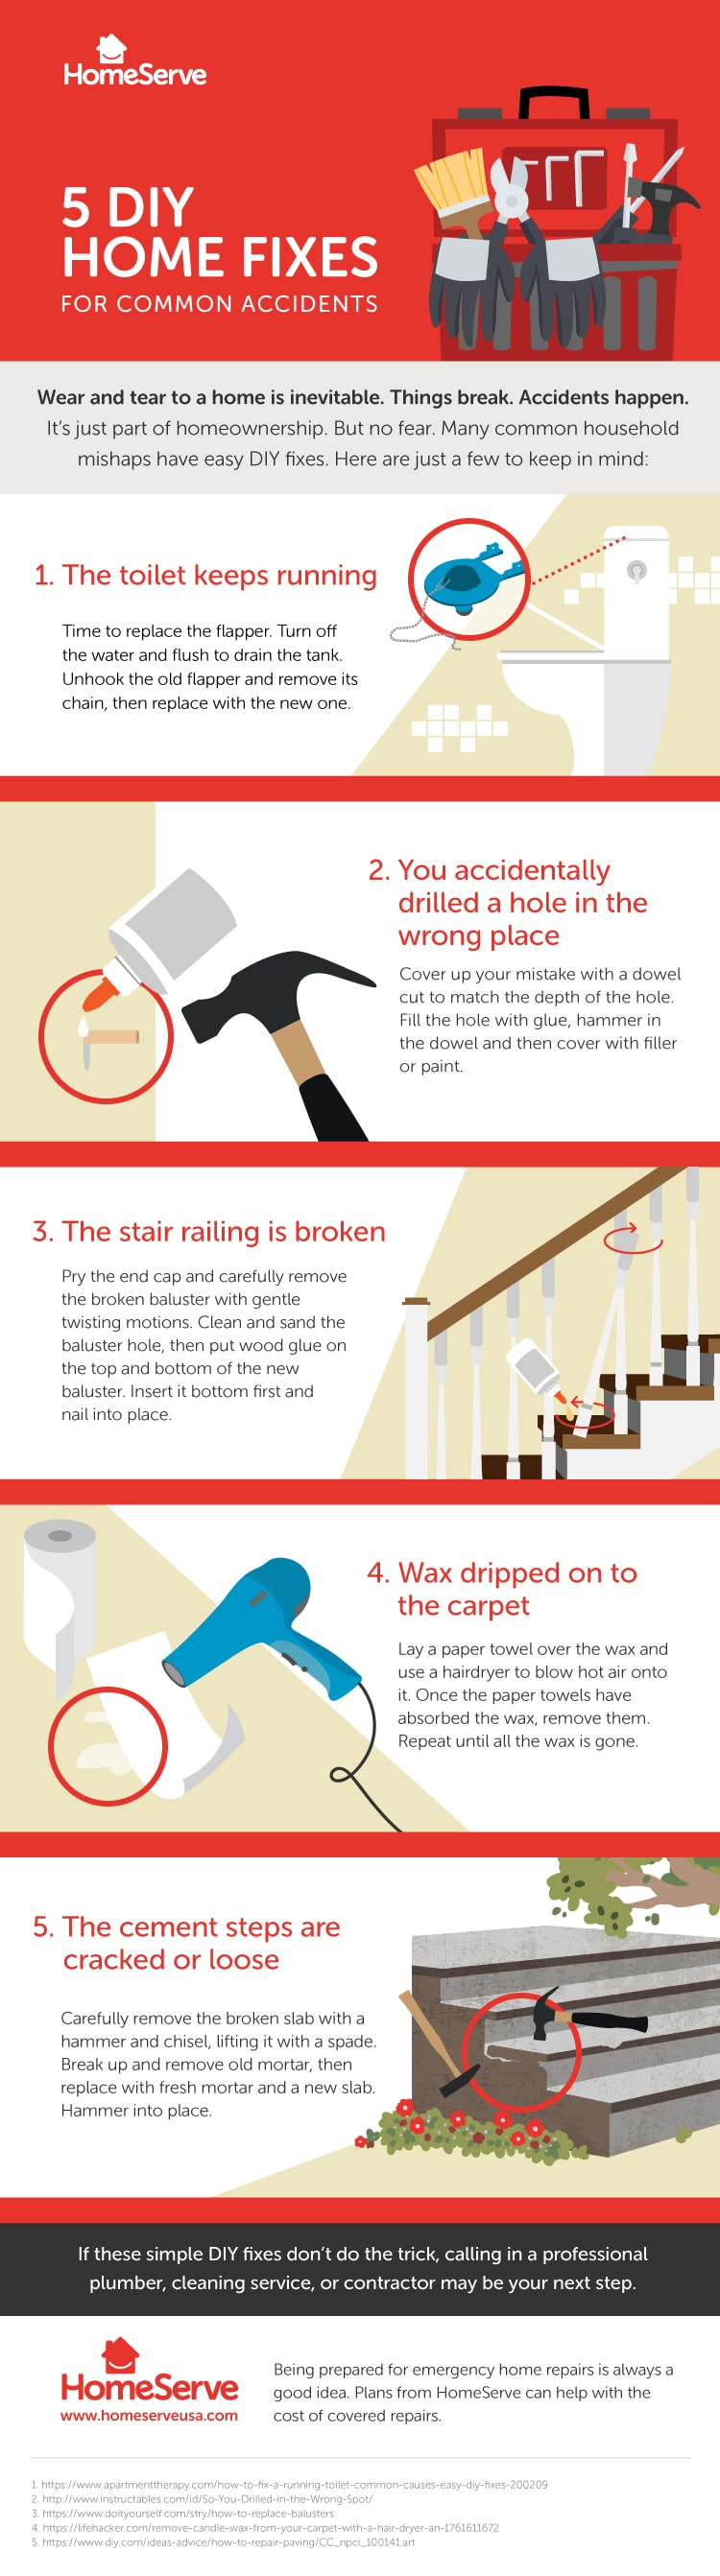 5 DIY home fixes for common accidents | HomeServe